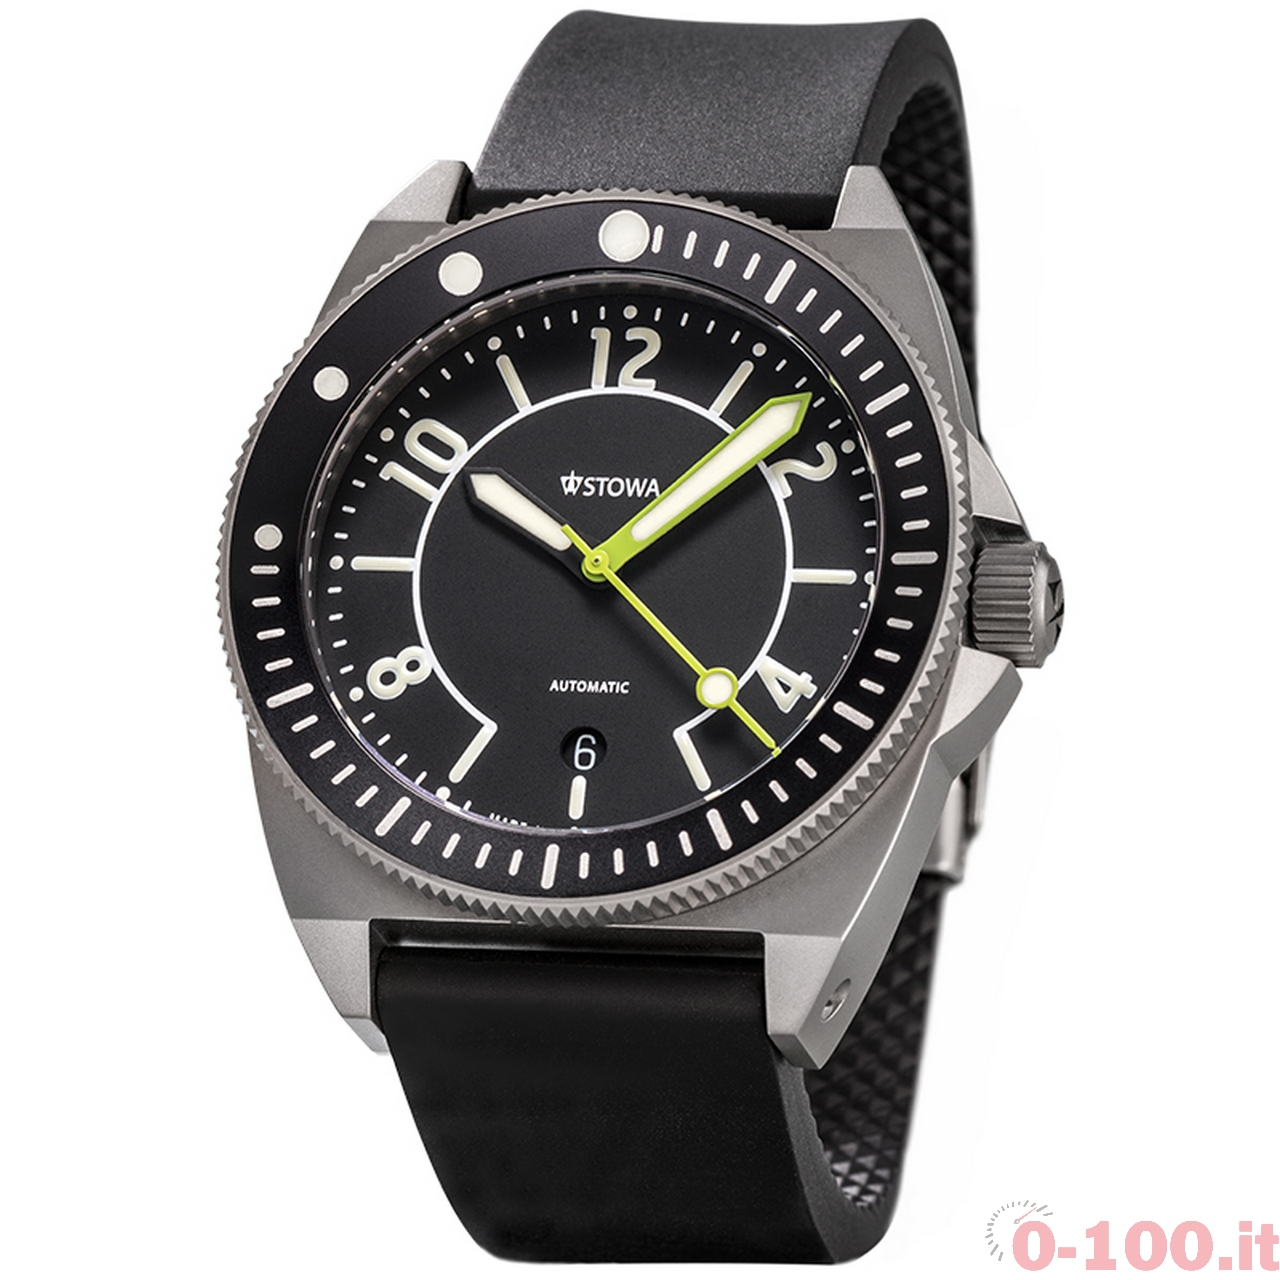 stowa-seatime-black-forest-edition-1-0-100_1